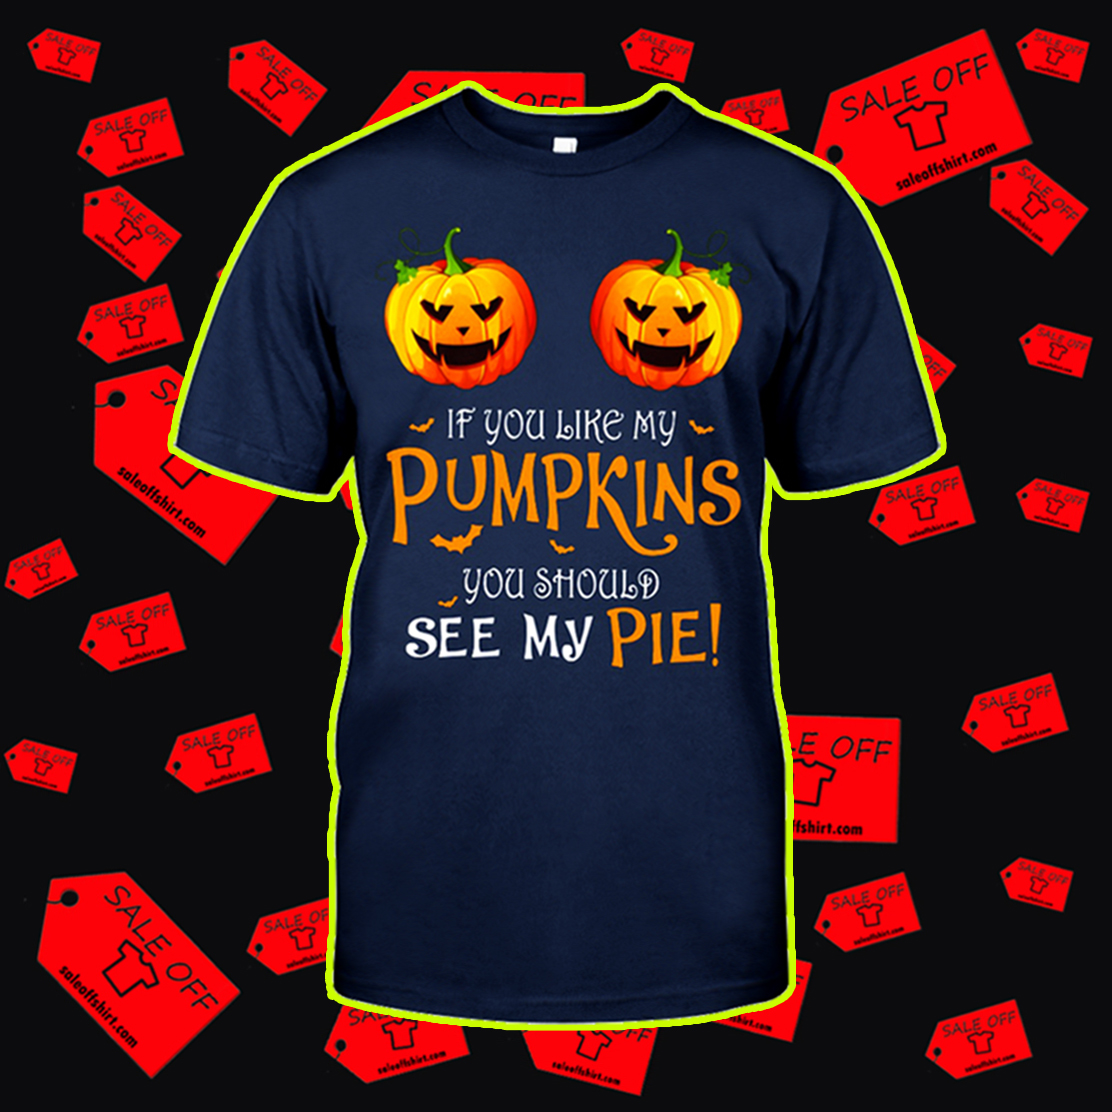 If you like my pumpkins you should see my pie t-shirt